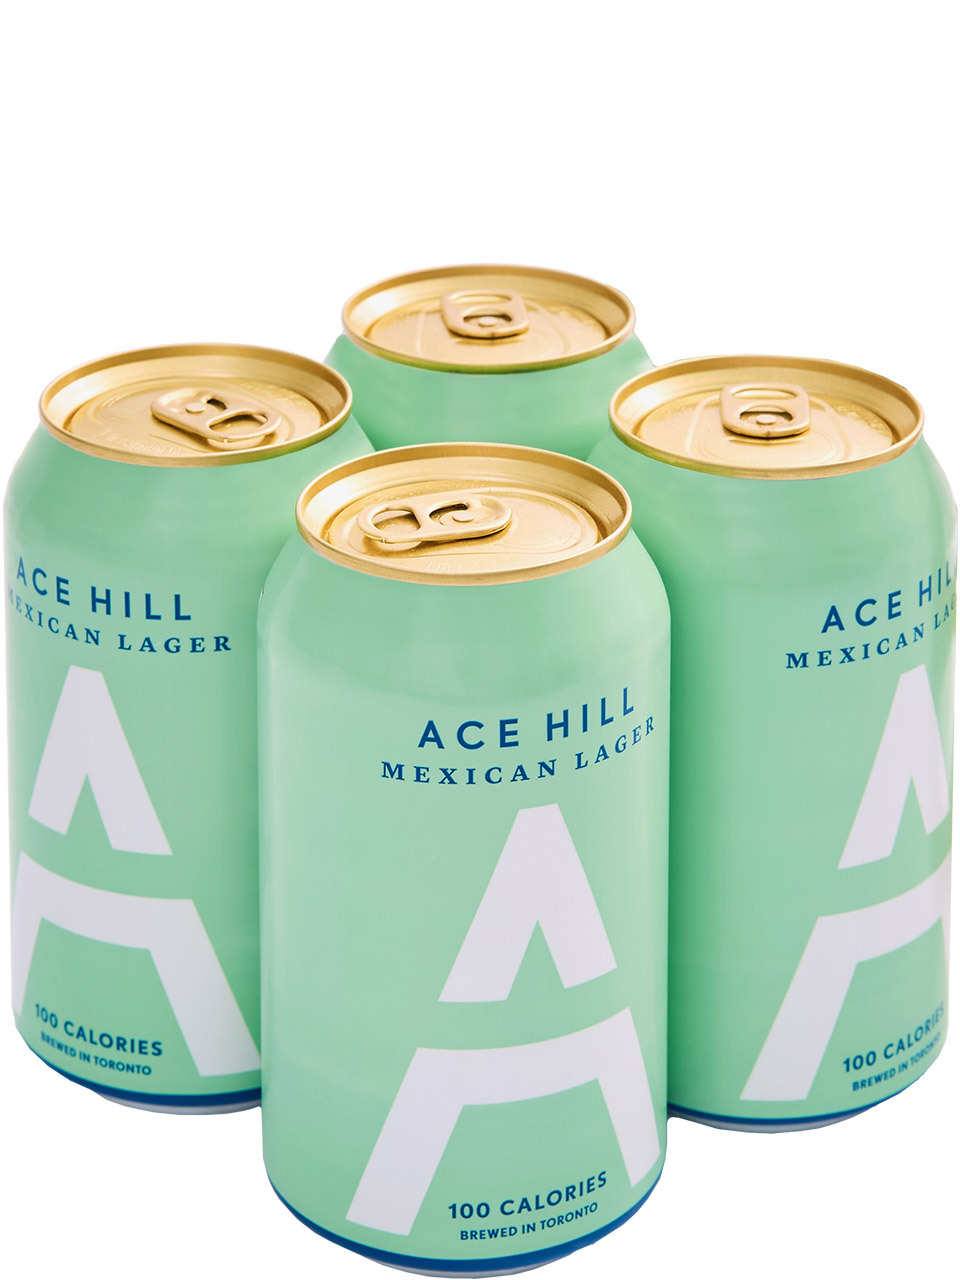 Ace Hill Mexican Lager 4 Pack Cans